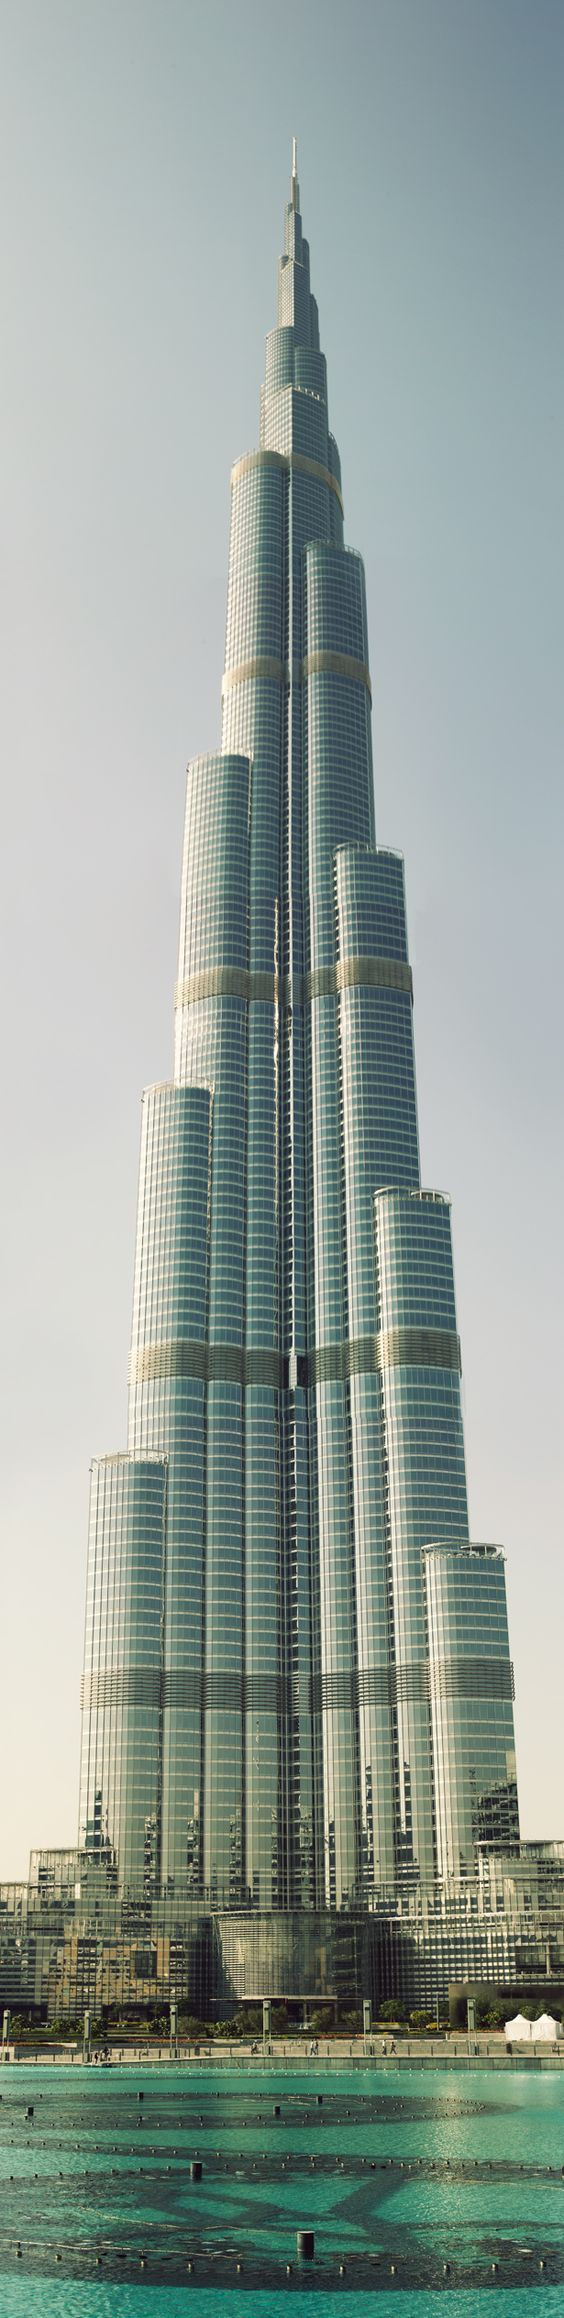 best 25 burg khalifa ideas only on pinterest burj khalifa burj watched a doc on the burg khalifa worlds tallest building and engineered to withstand